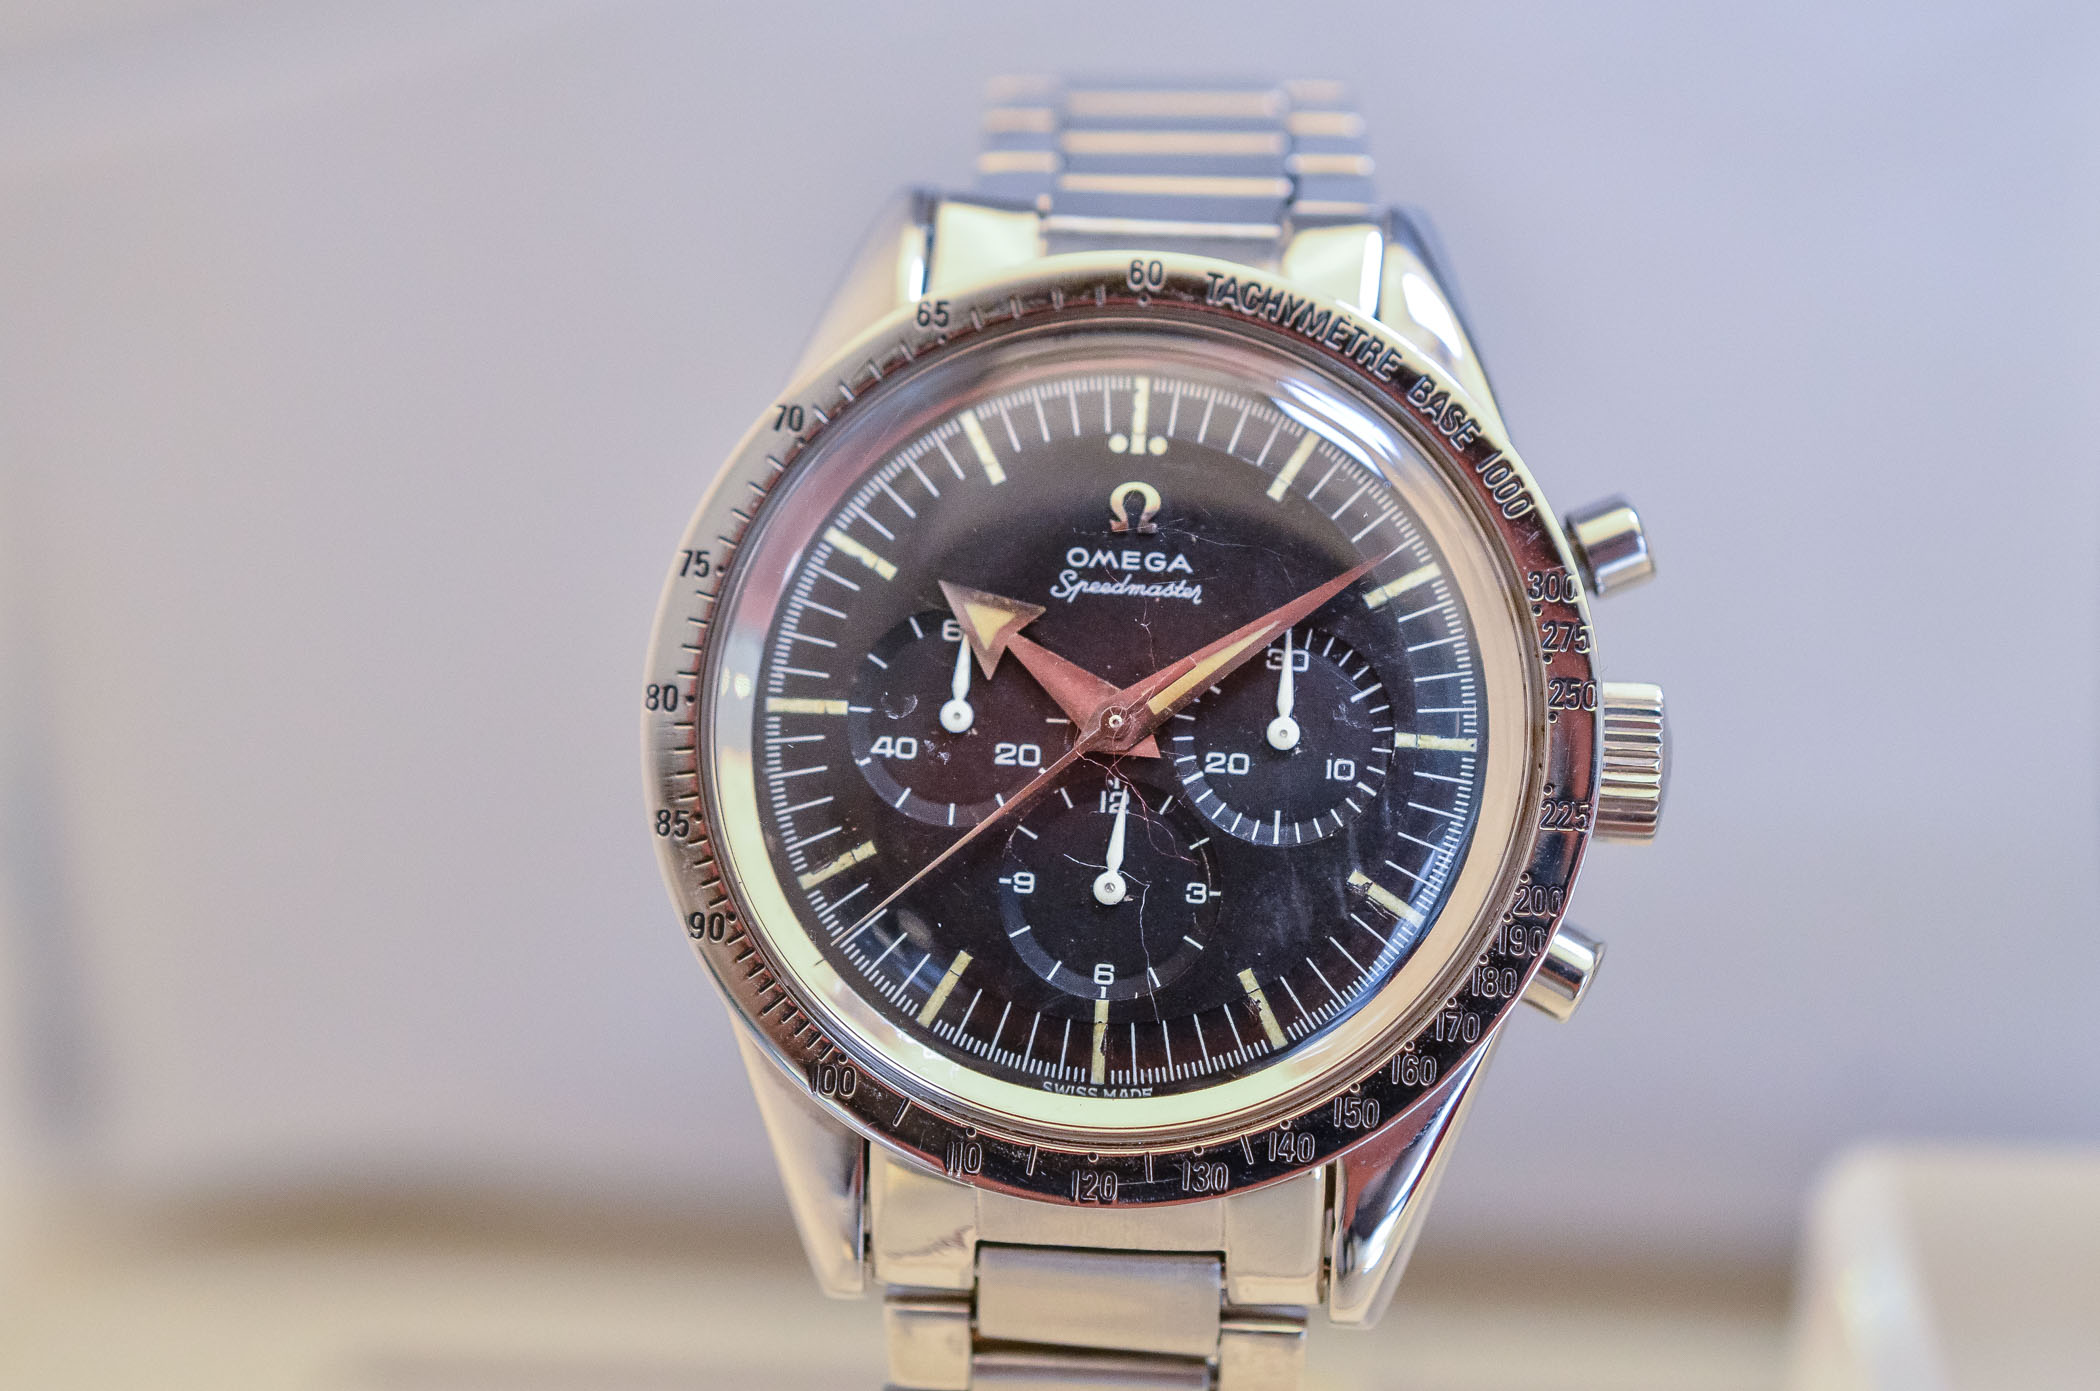 Moon Landing 50 - History of the Omega Speedmaster